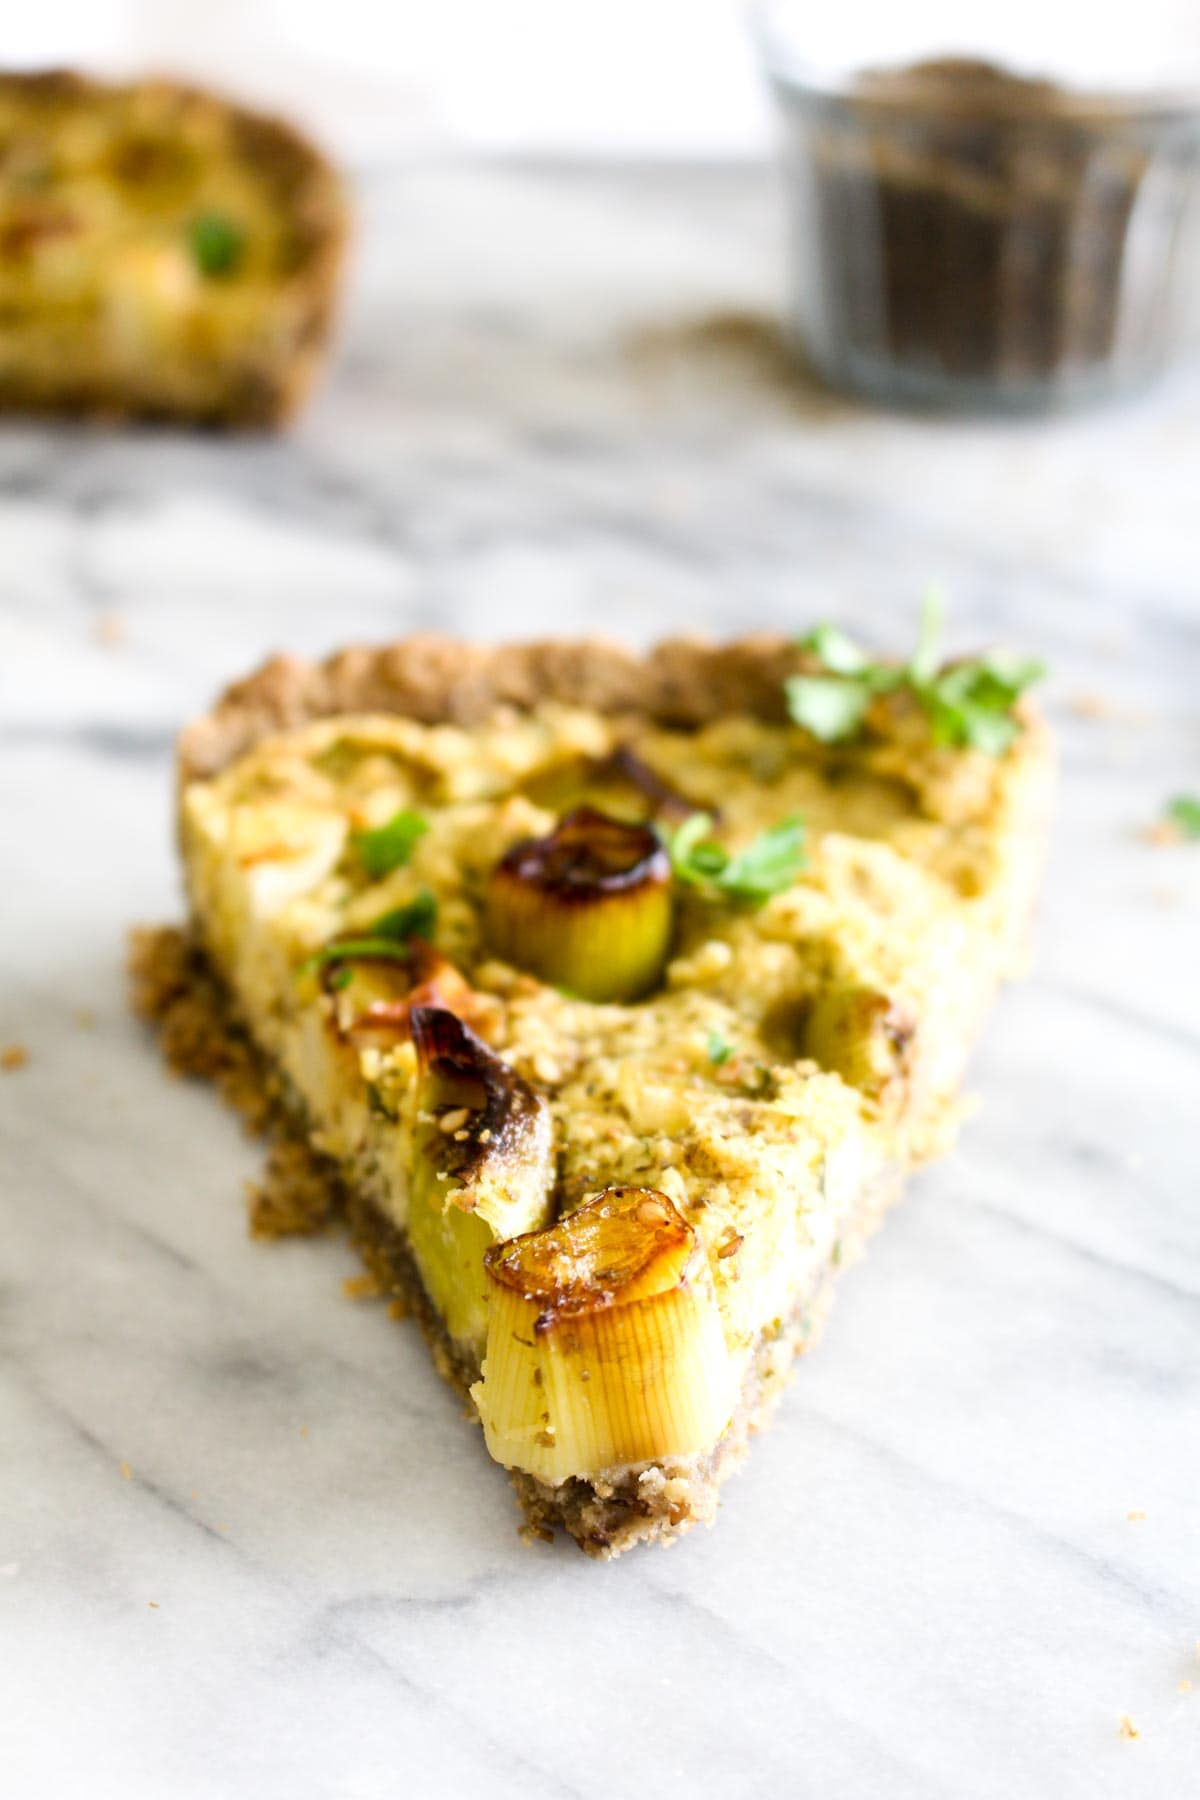 A slice of tart filled with hummus and leeks topped with za'atar and parsley.